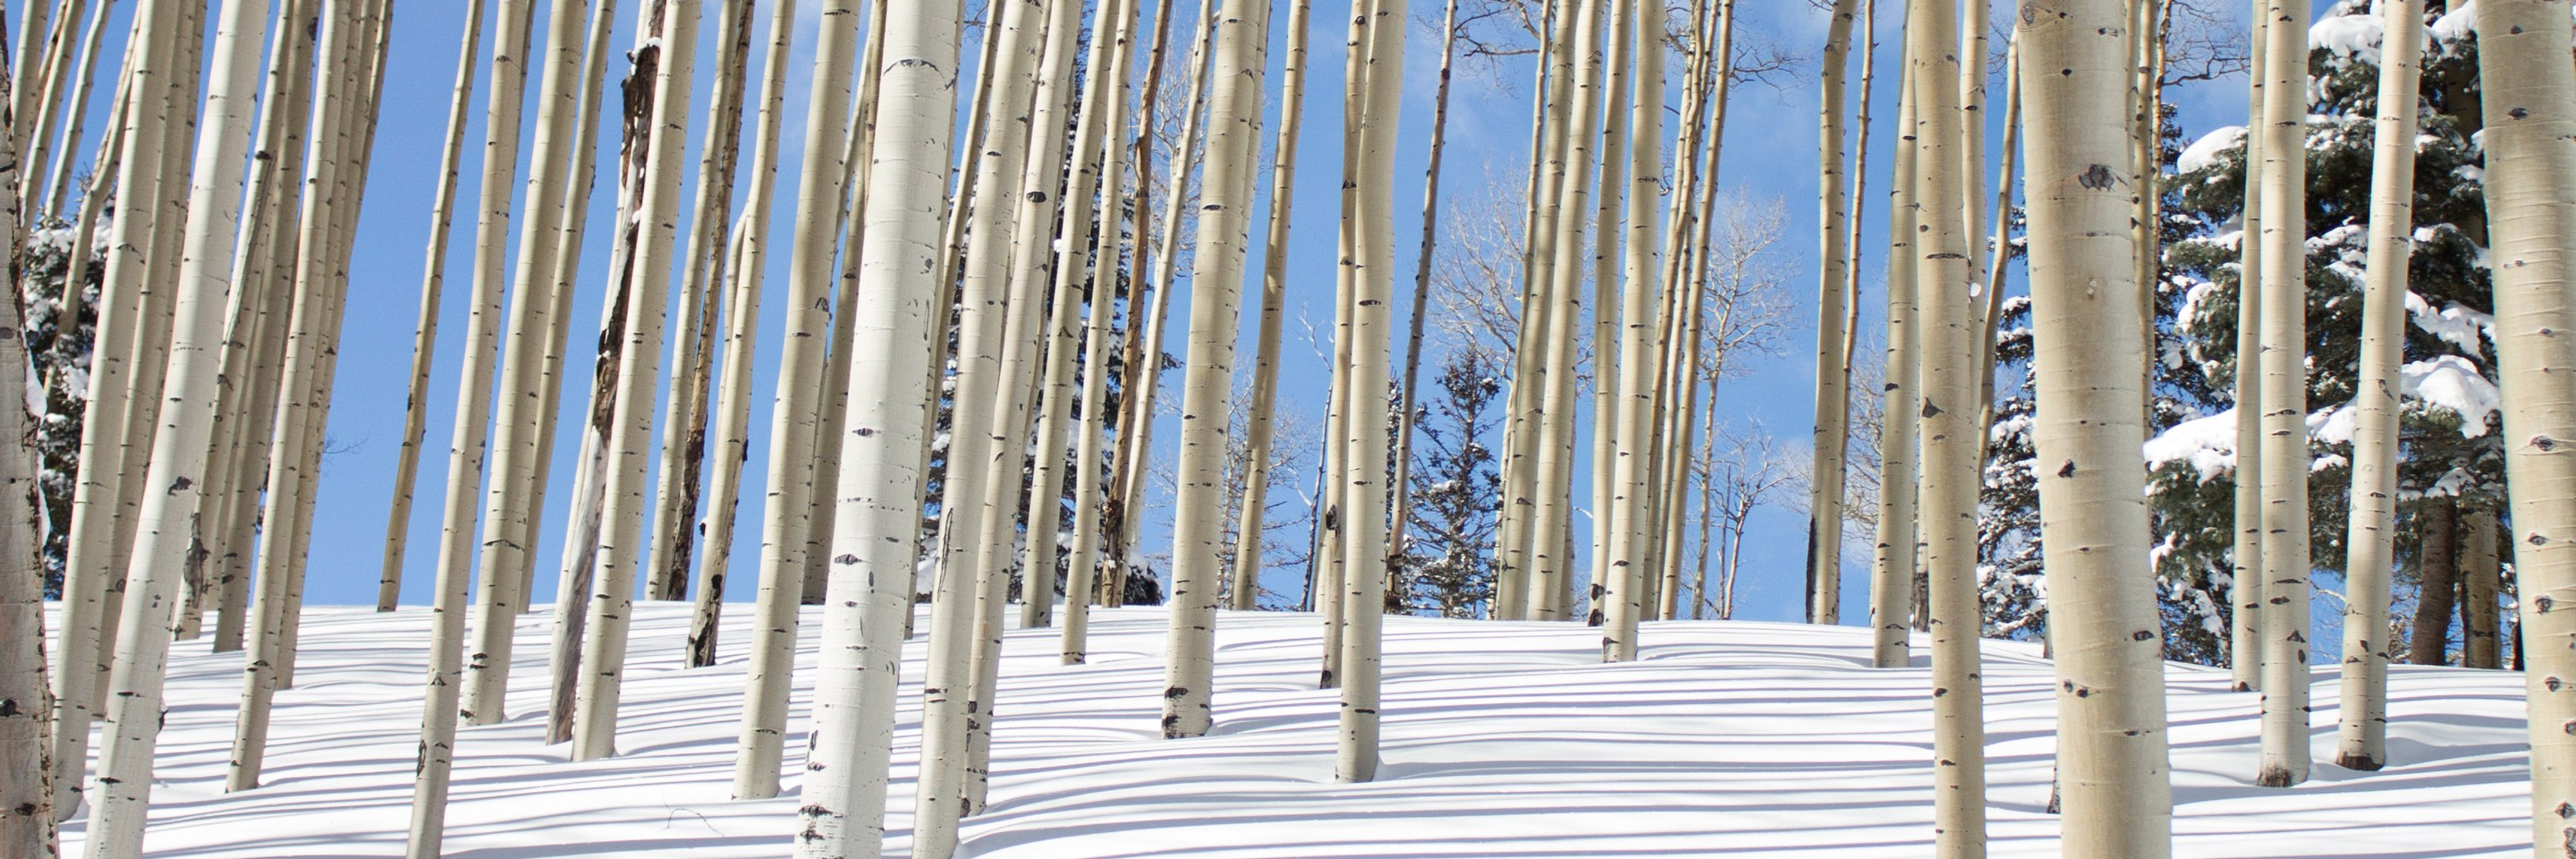 aspen trees in snow